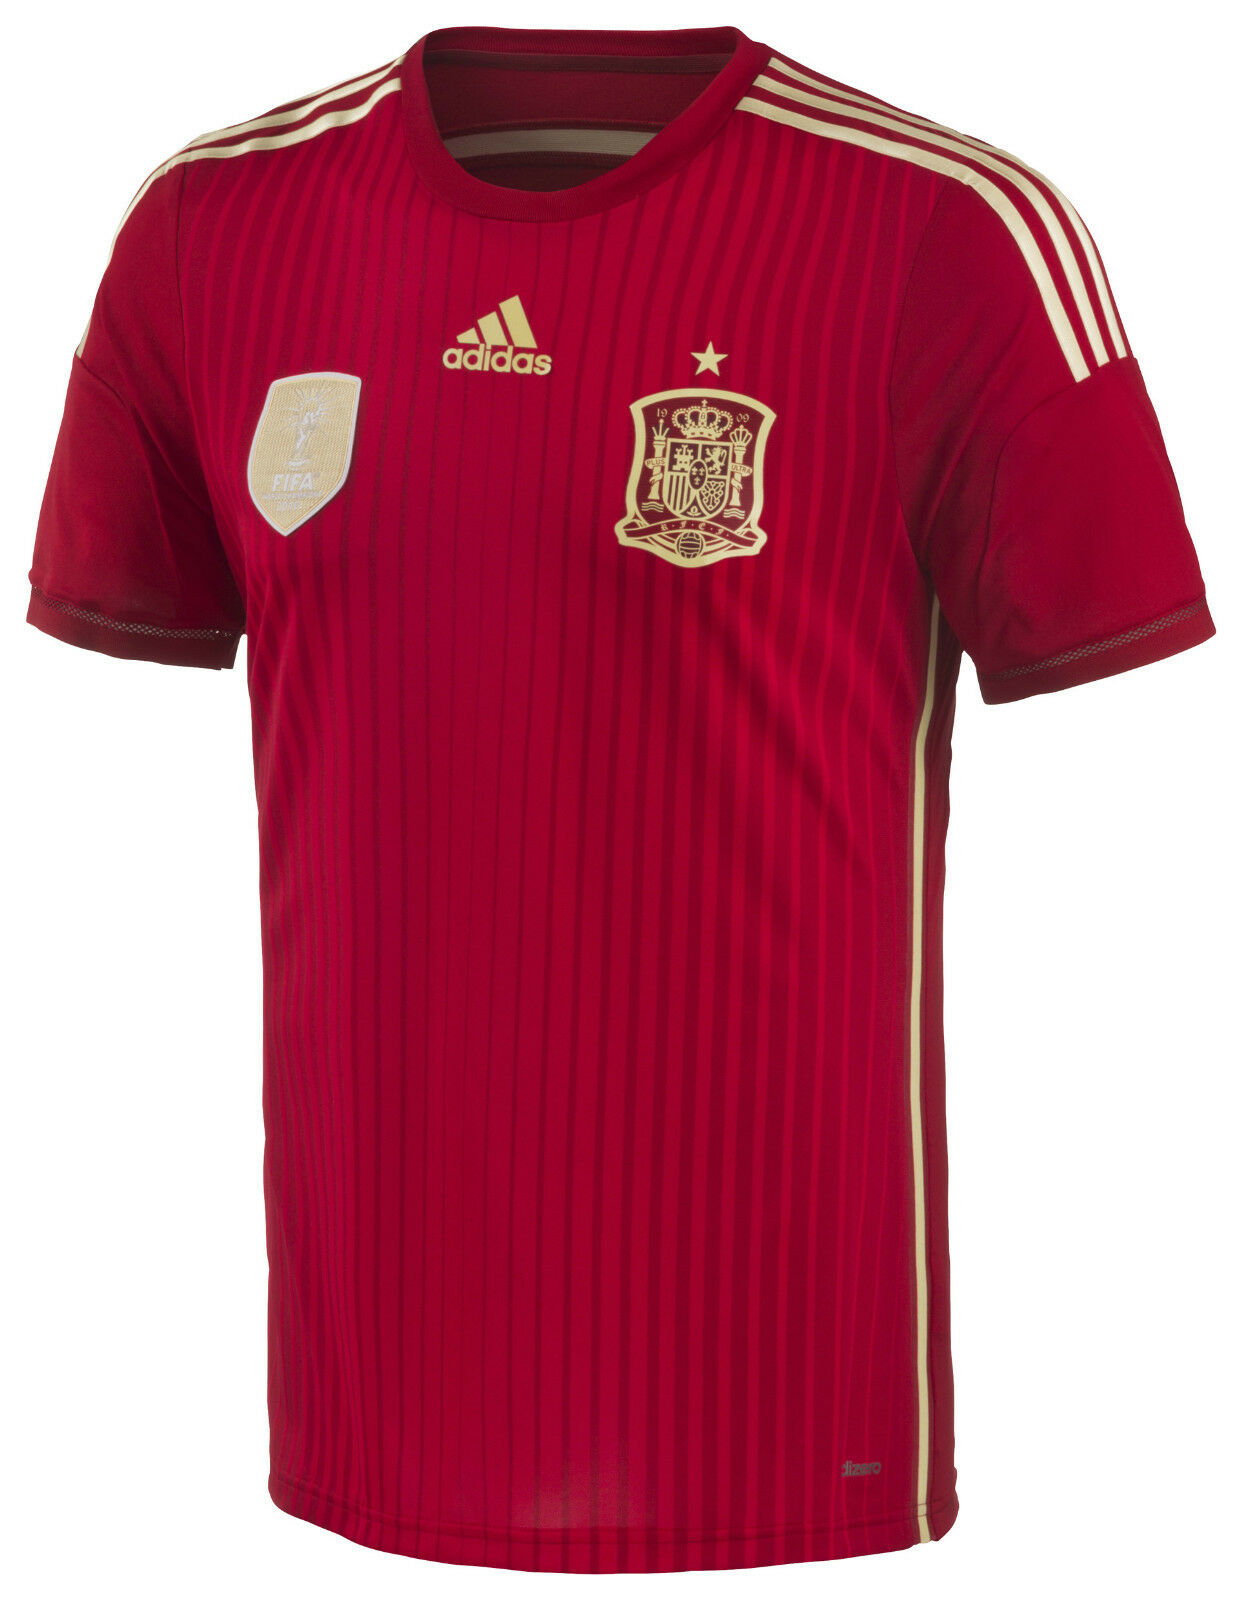 ADIDAS FEF H JSY T-SHIRT OFFICIAL SPAIN WORLD BRAZIL 2014 (PVP IN STORE 79E)